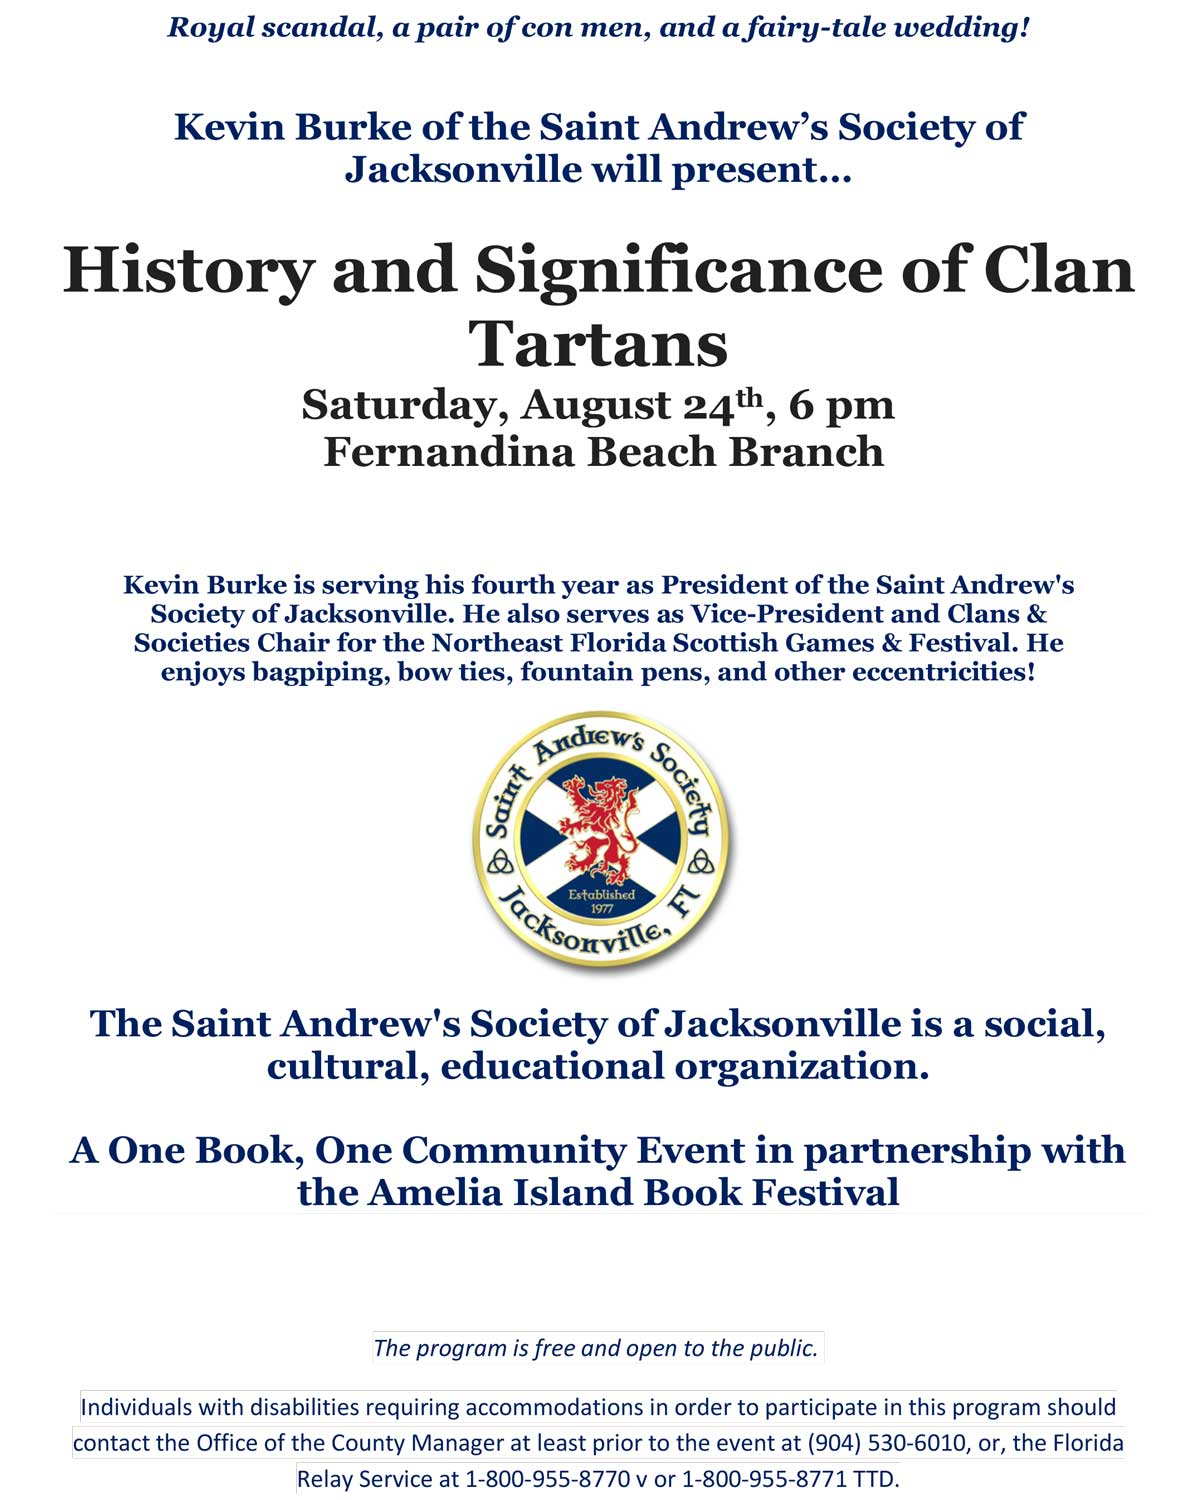 History and Significance of Clan Tartans Saturday, August 24